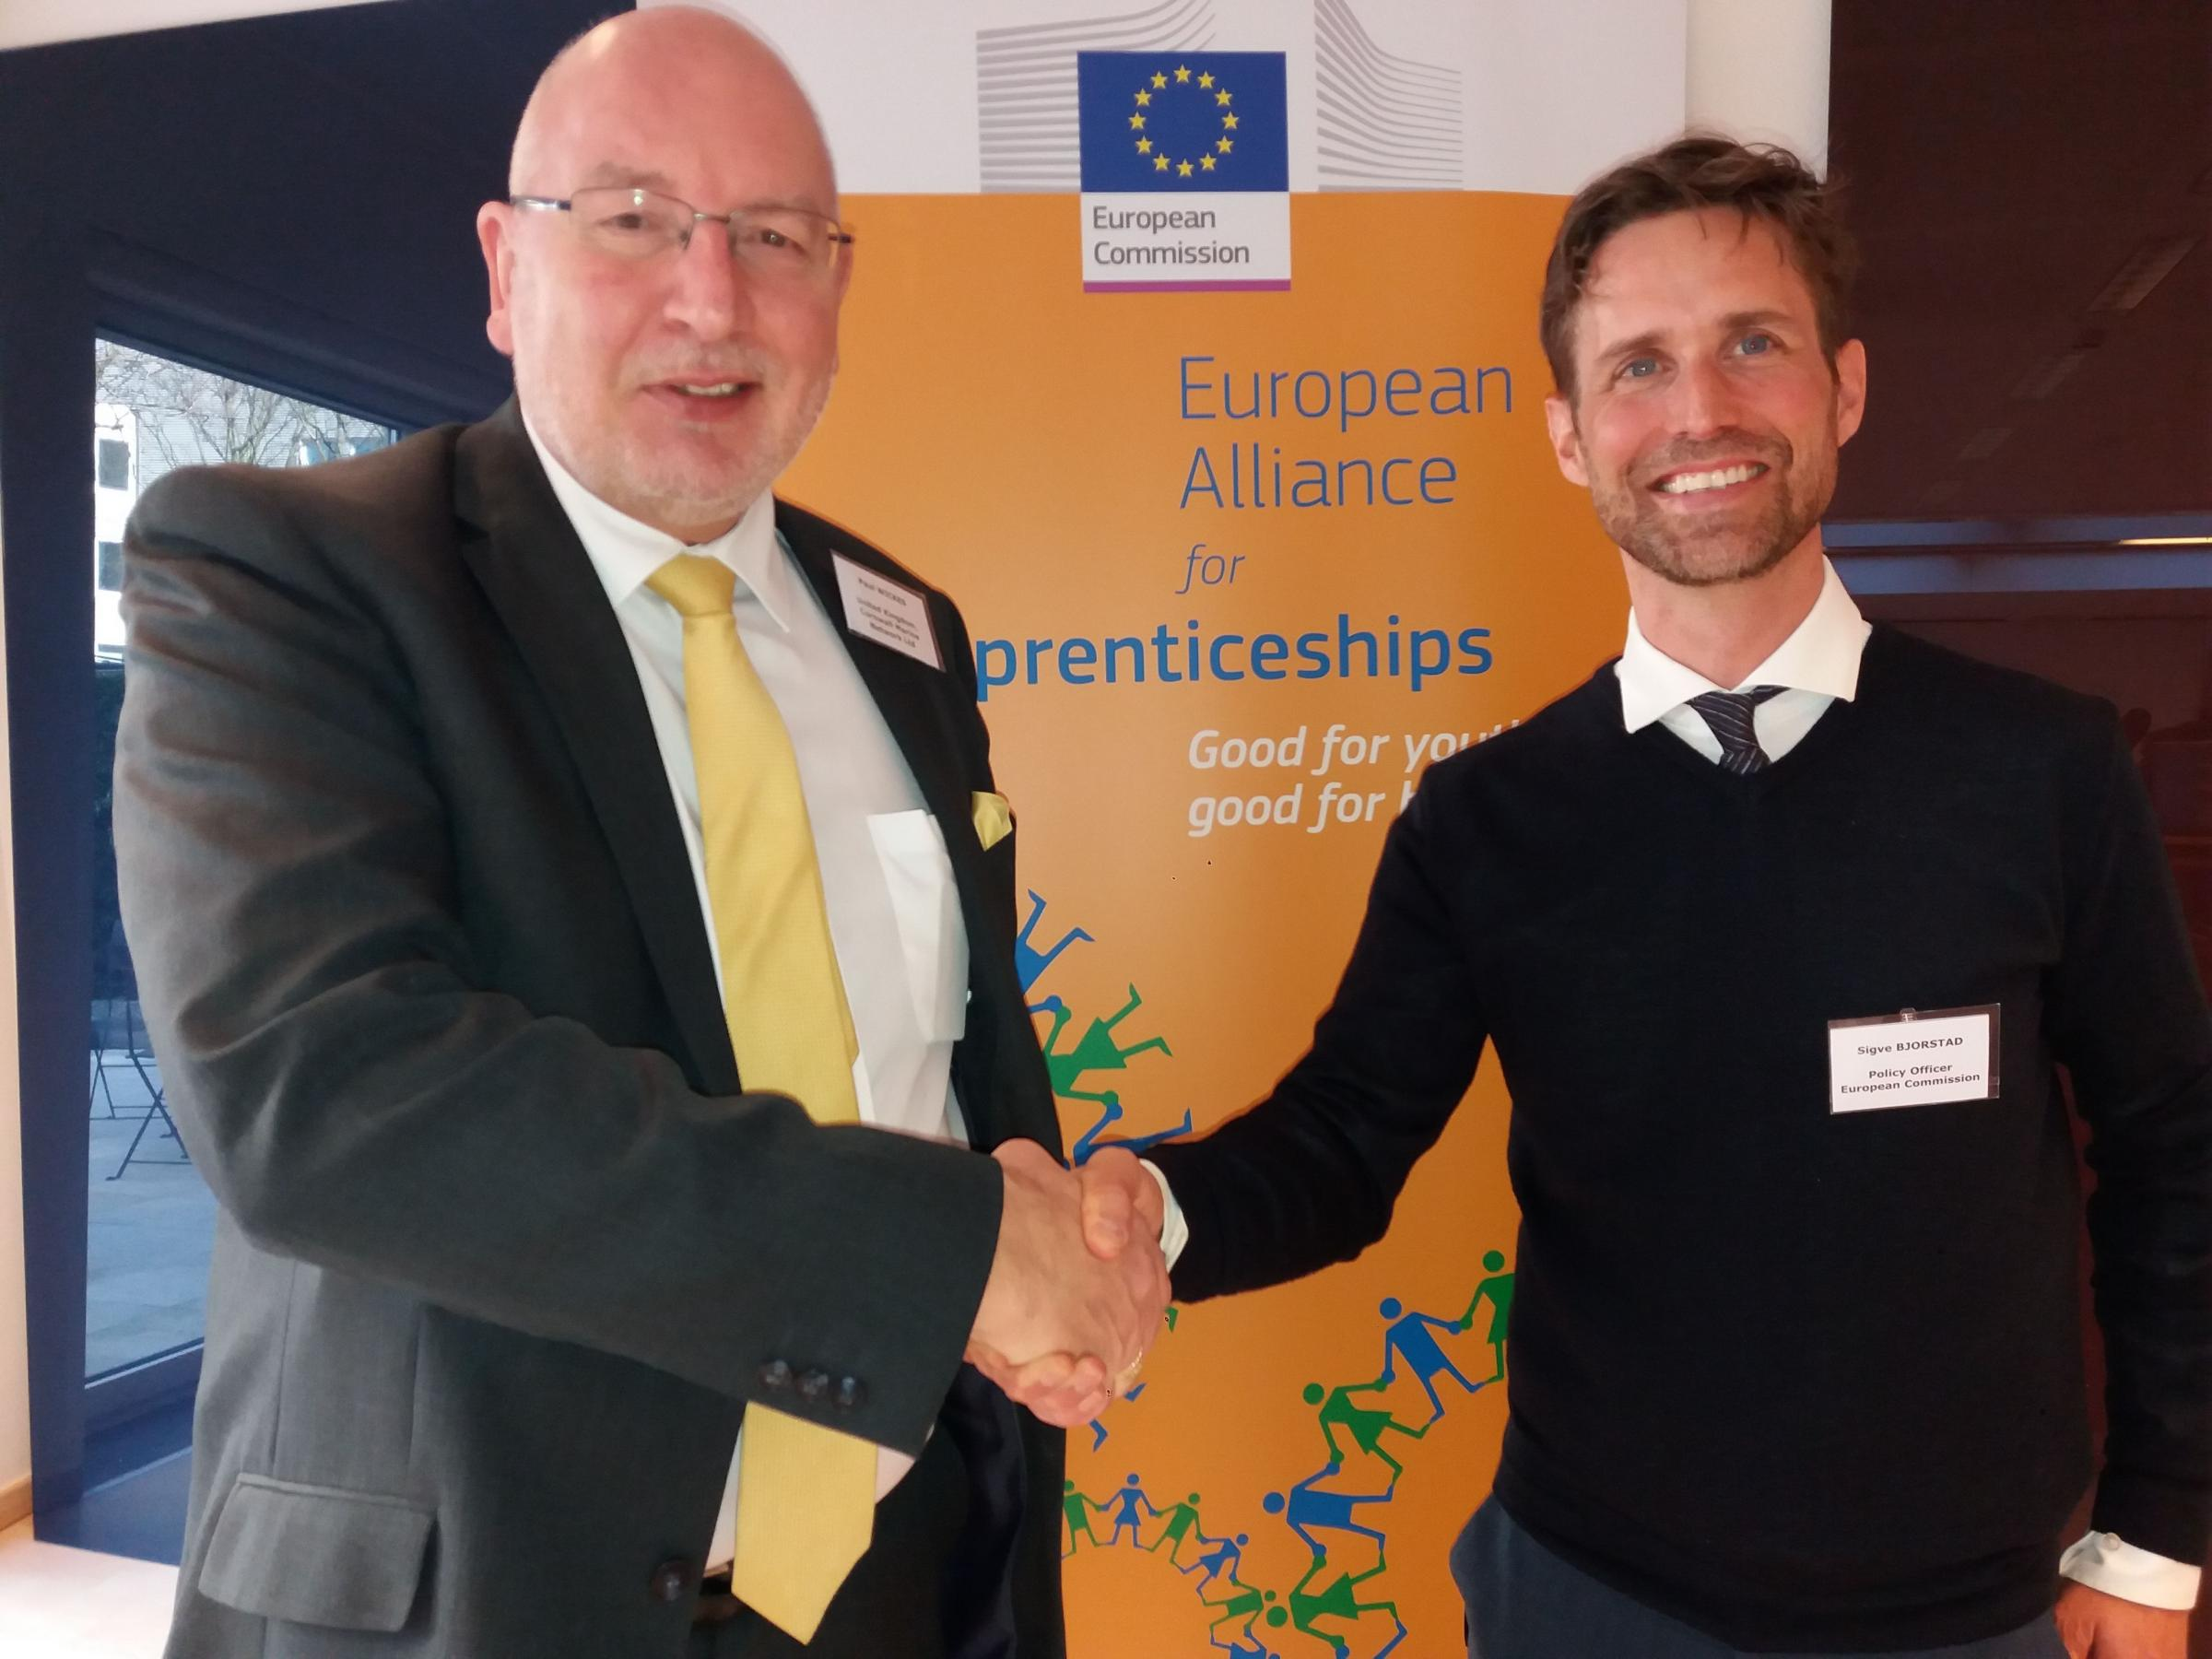 Paul Wickes, CEO Cornwall Marine Network, and Sigve Soldal Bjorstad,DG EMPLOY at the European Commission, at the 10th EAfA stakeholder meeting in Brussels